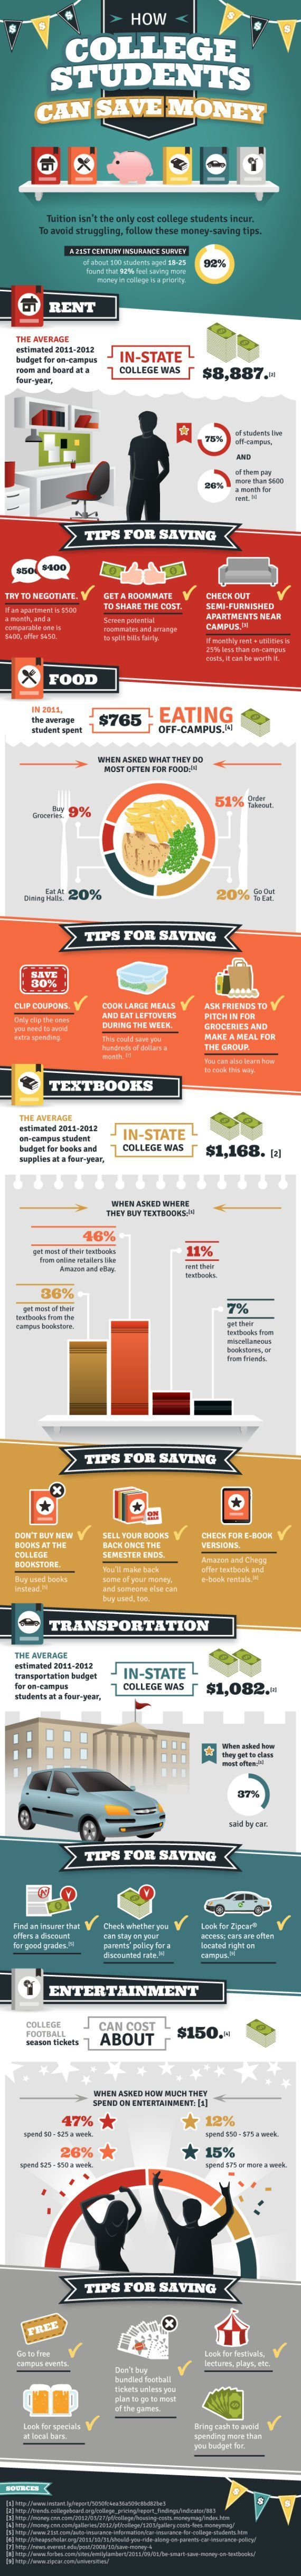 How College Students Save  Spend Money Infographic  College